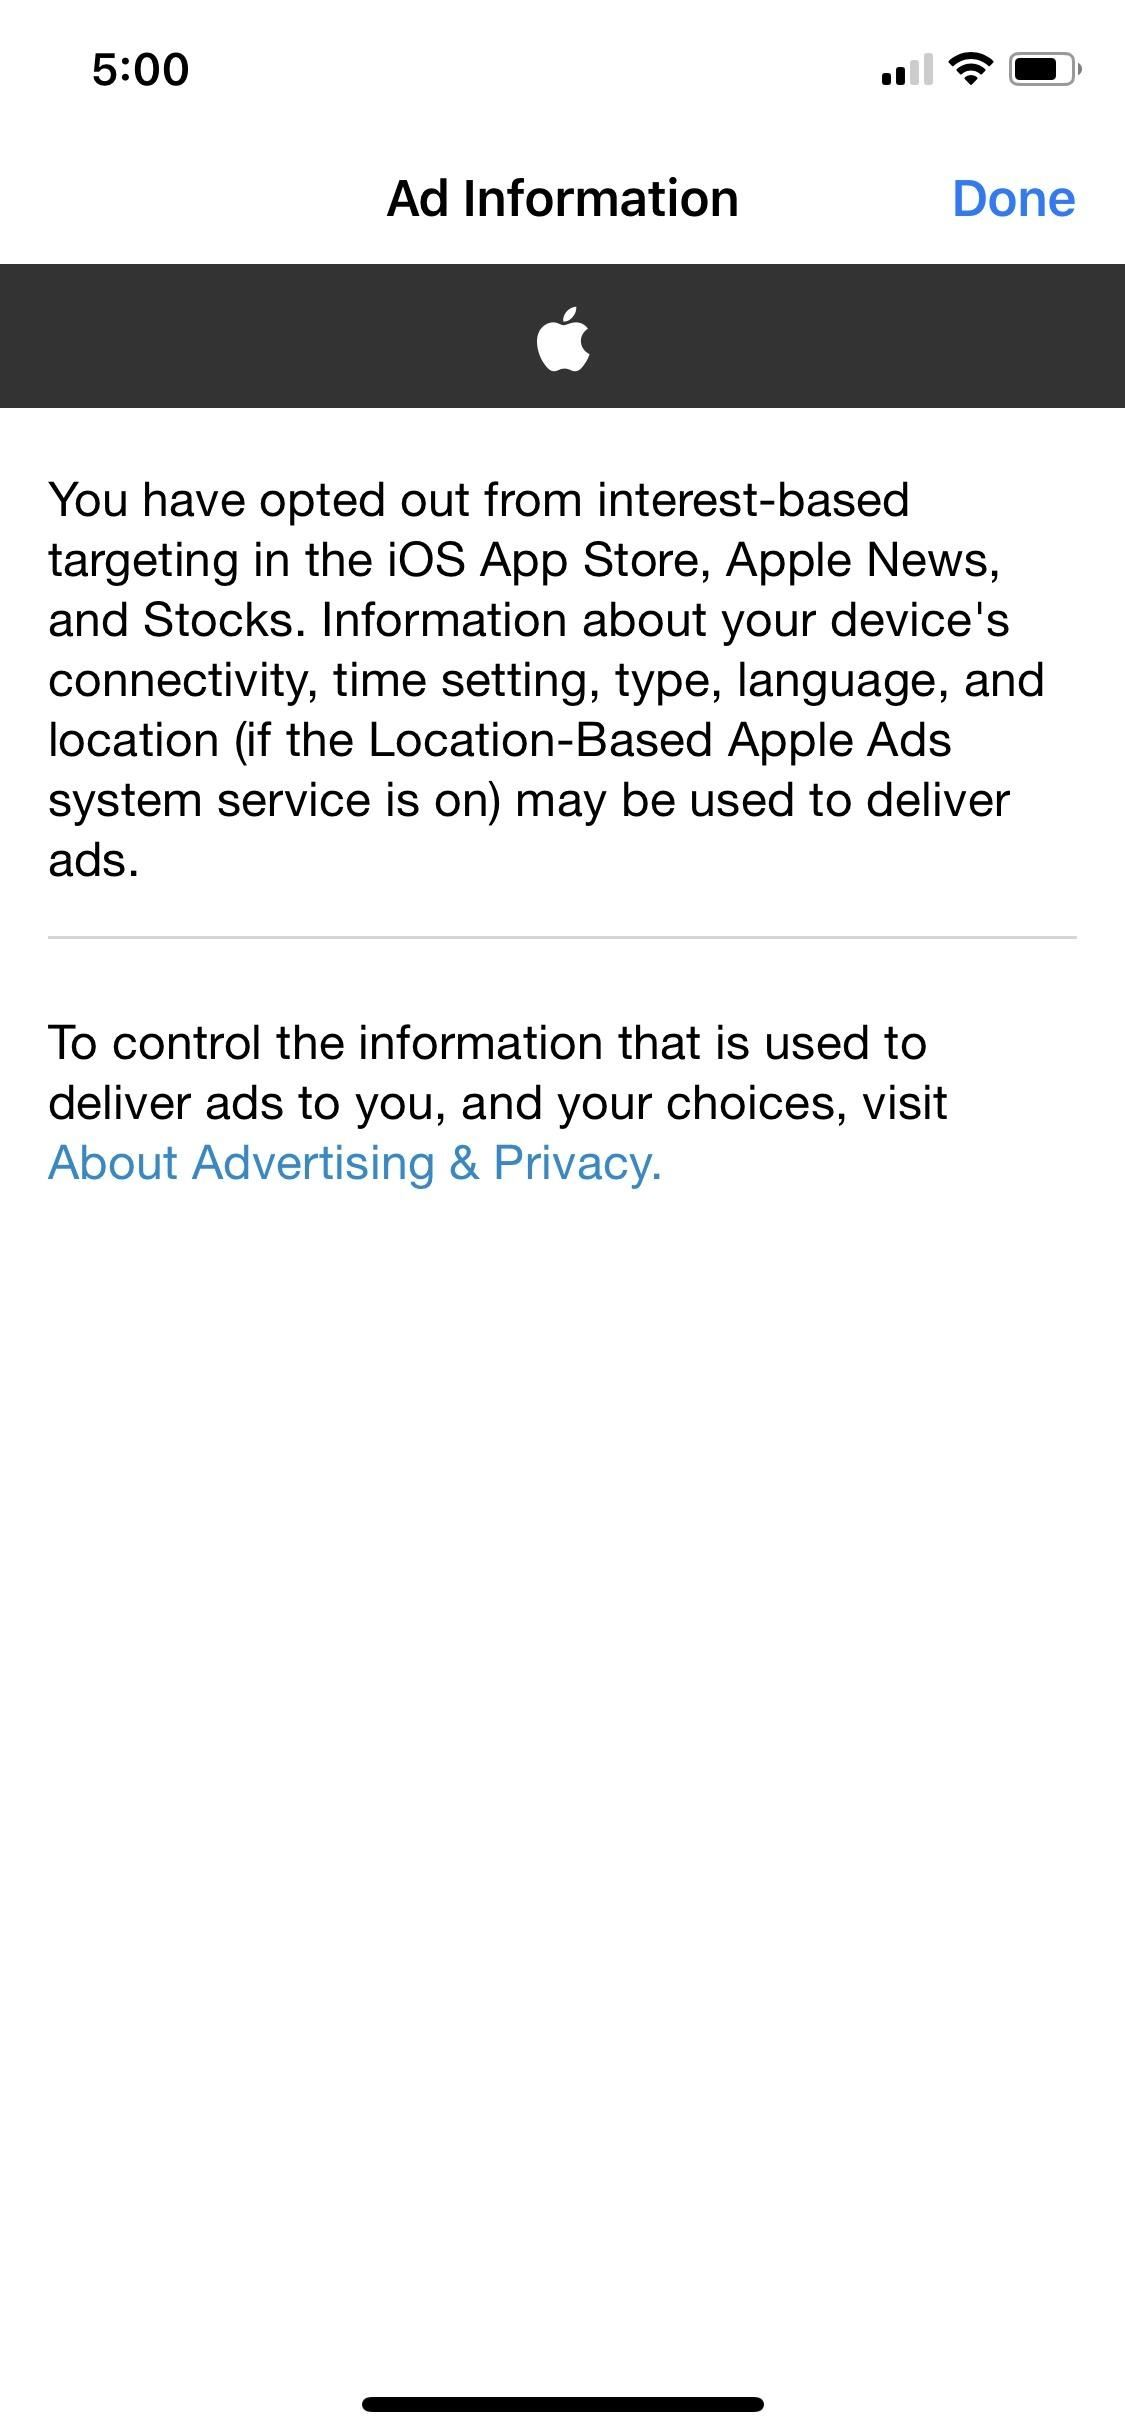 https://img.gadgethacks.com/img/05/16/63680997895339/0/stop-ads-from-spying-your-iphone-activity.w1456.jpg